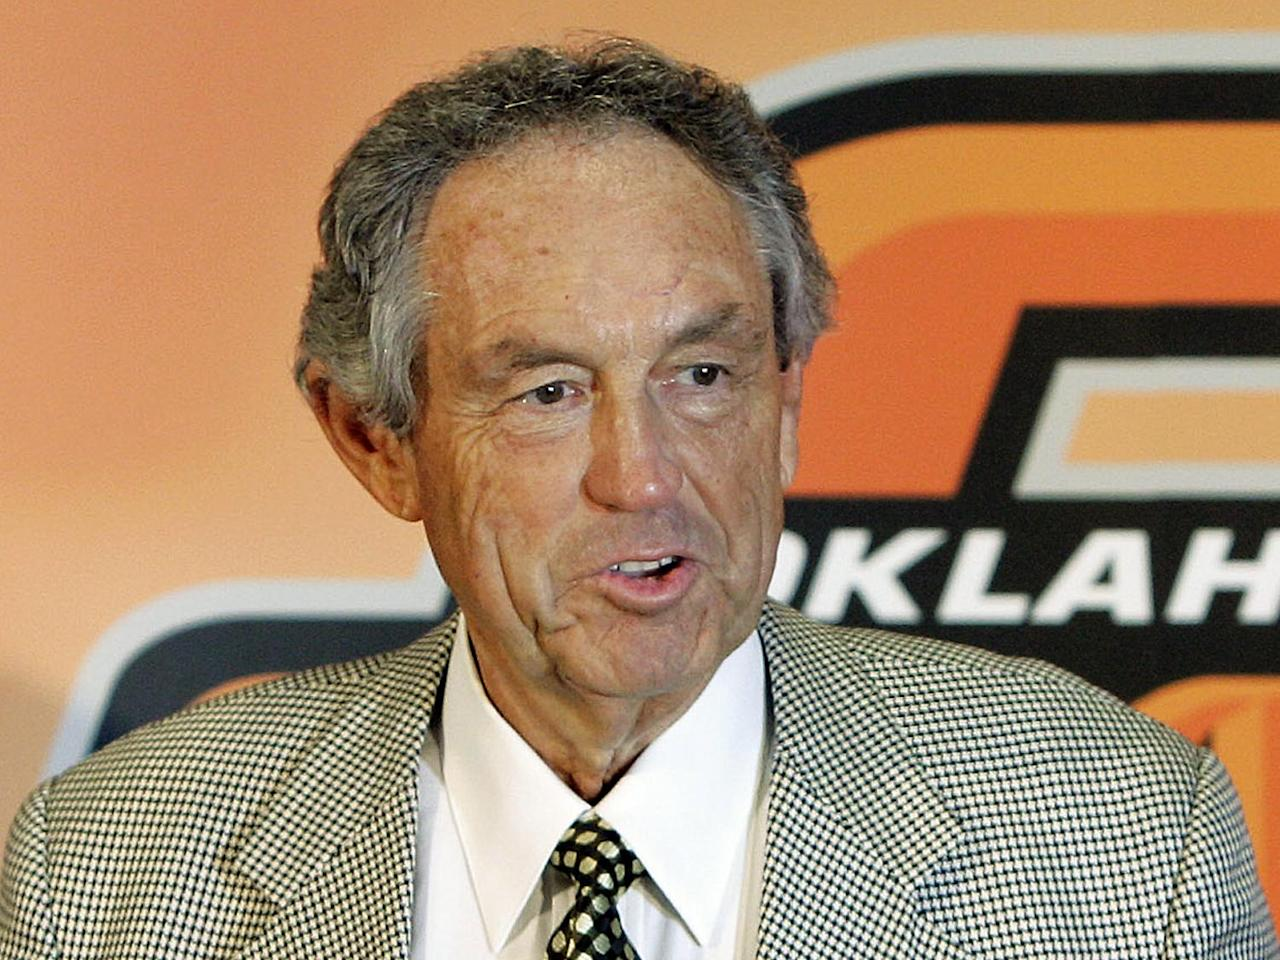 Eddie Sutton, as Oklahoma State University basketball head coach, announcing his retirement, photo on black